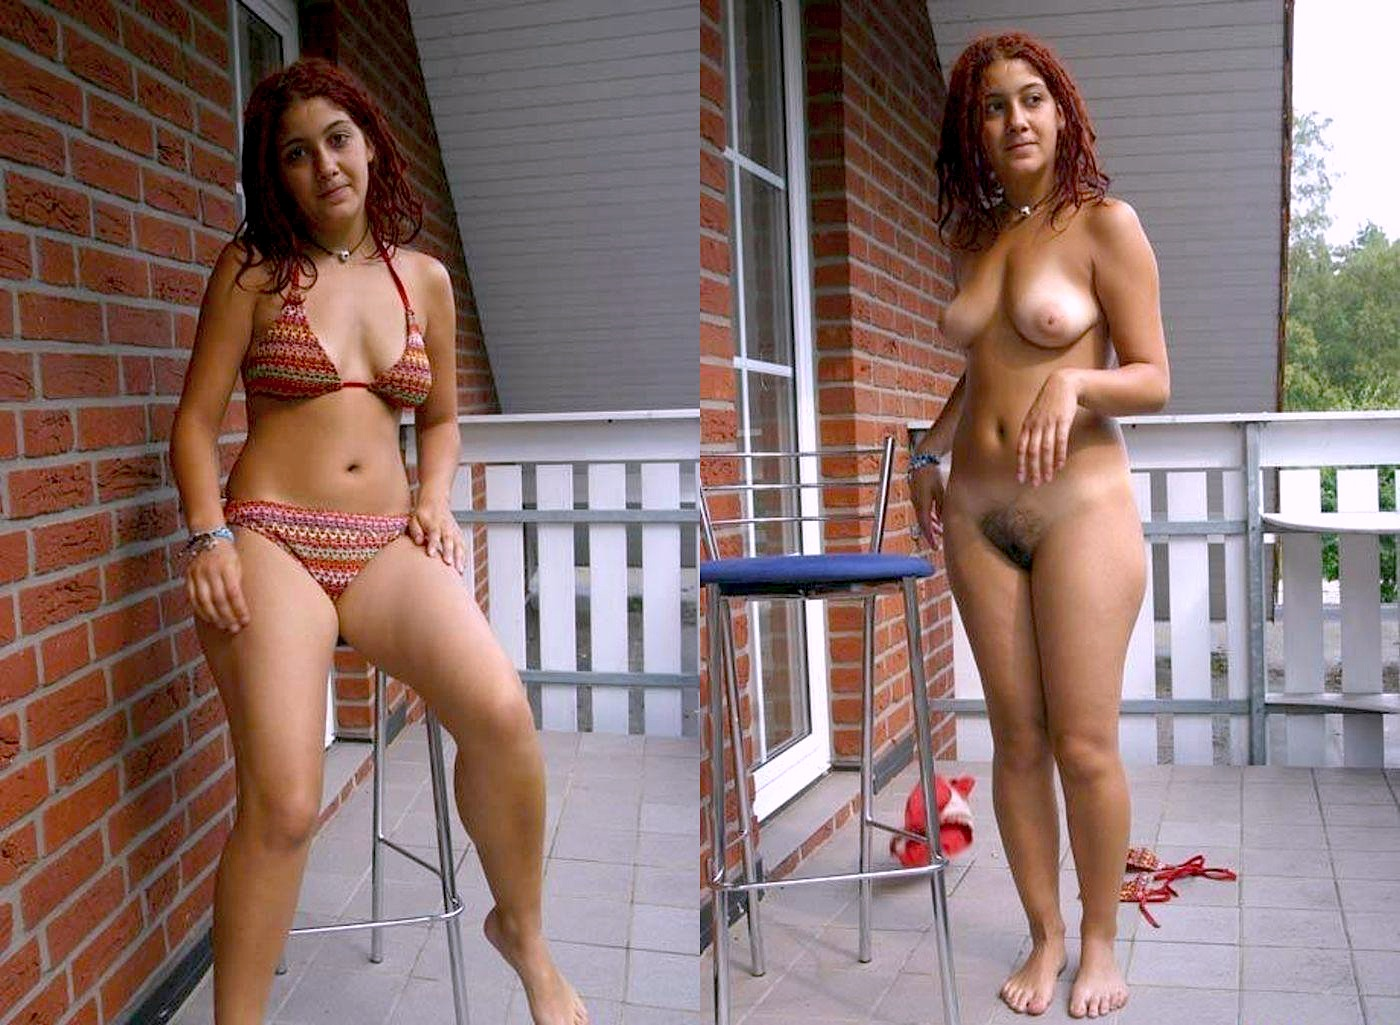 undressed and swimsuit dressed Amateur